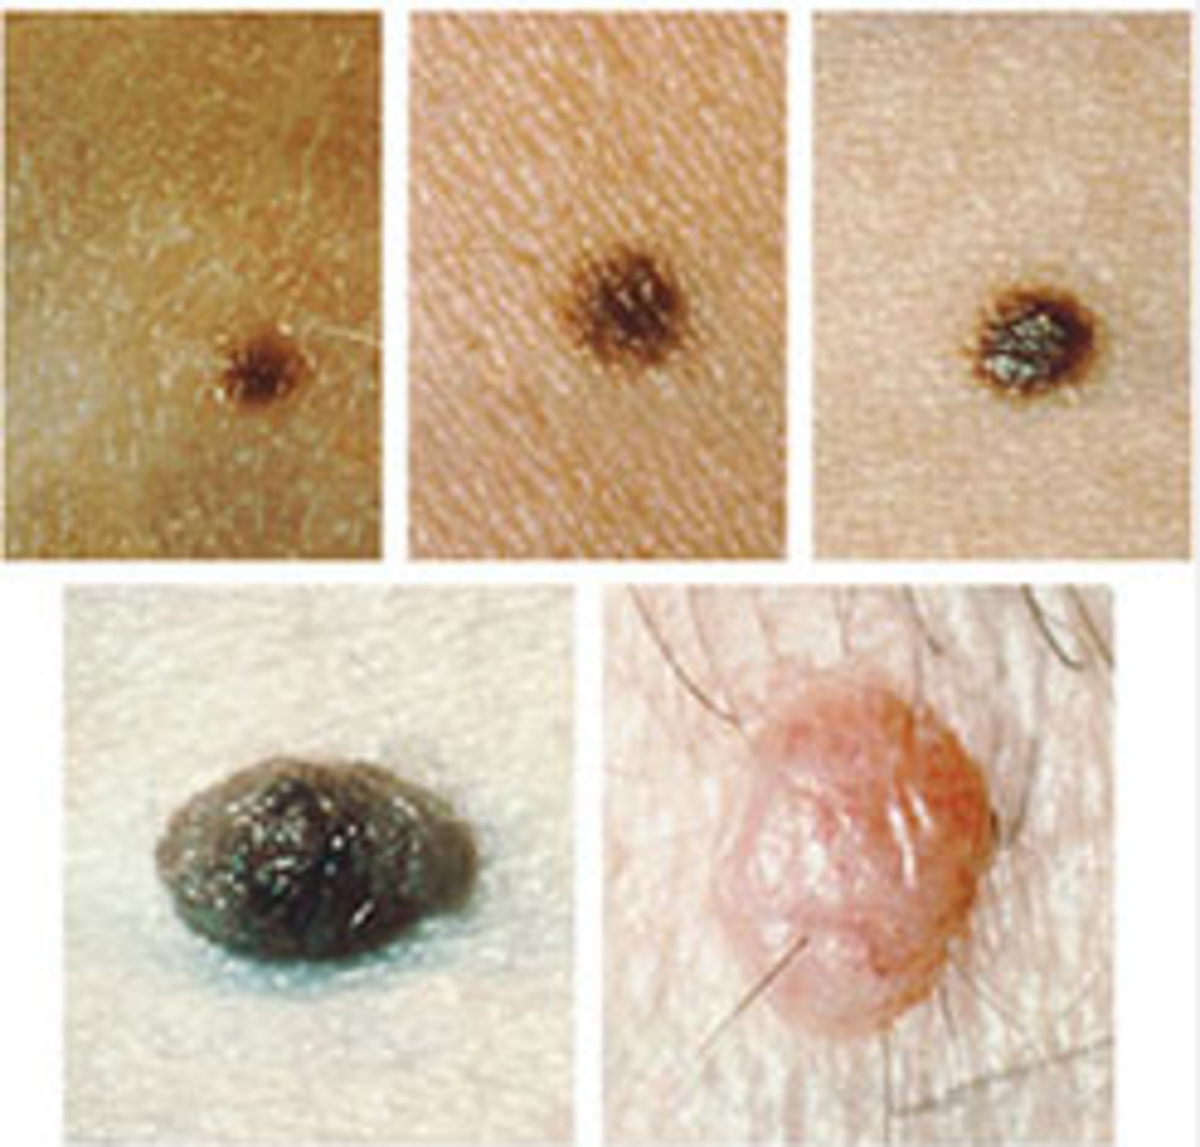 Checking Your Moles: An Important Part of Skin Health